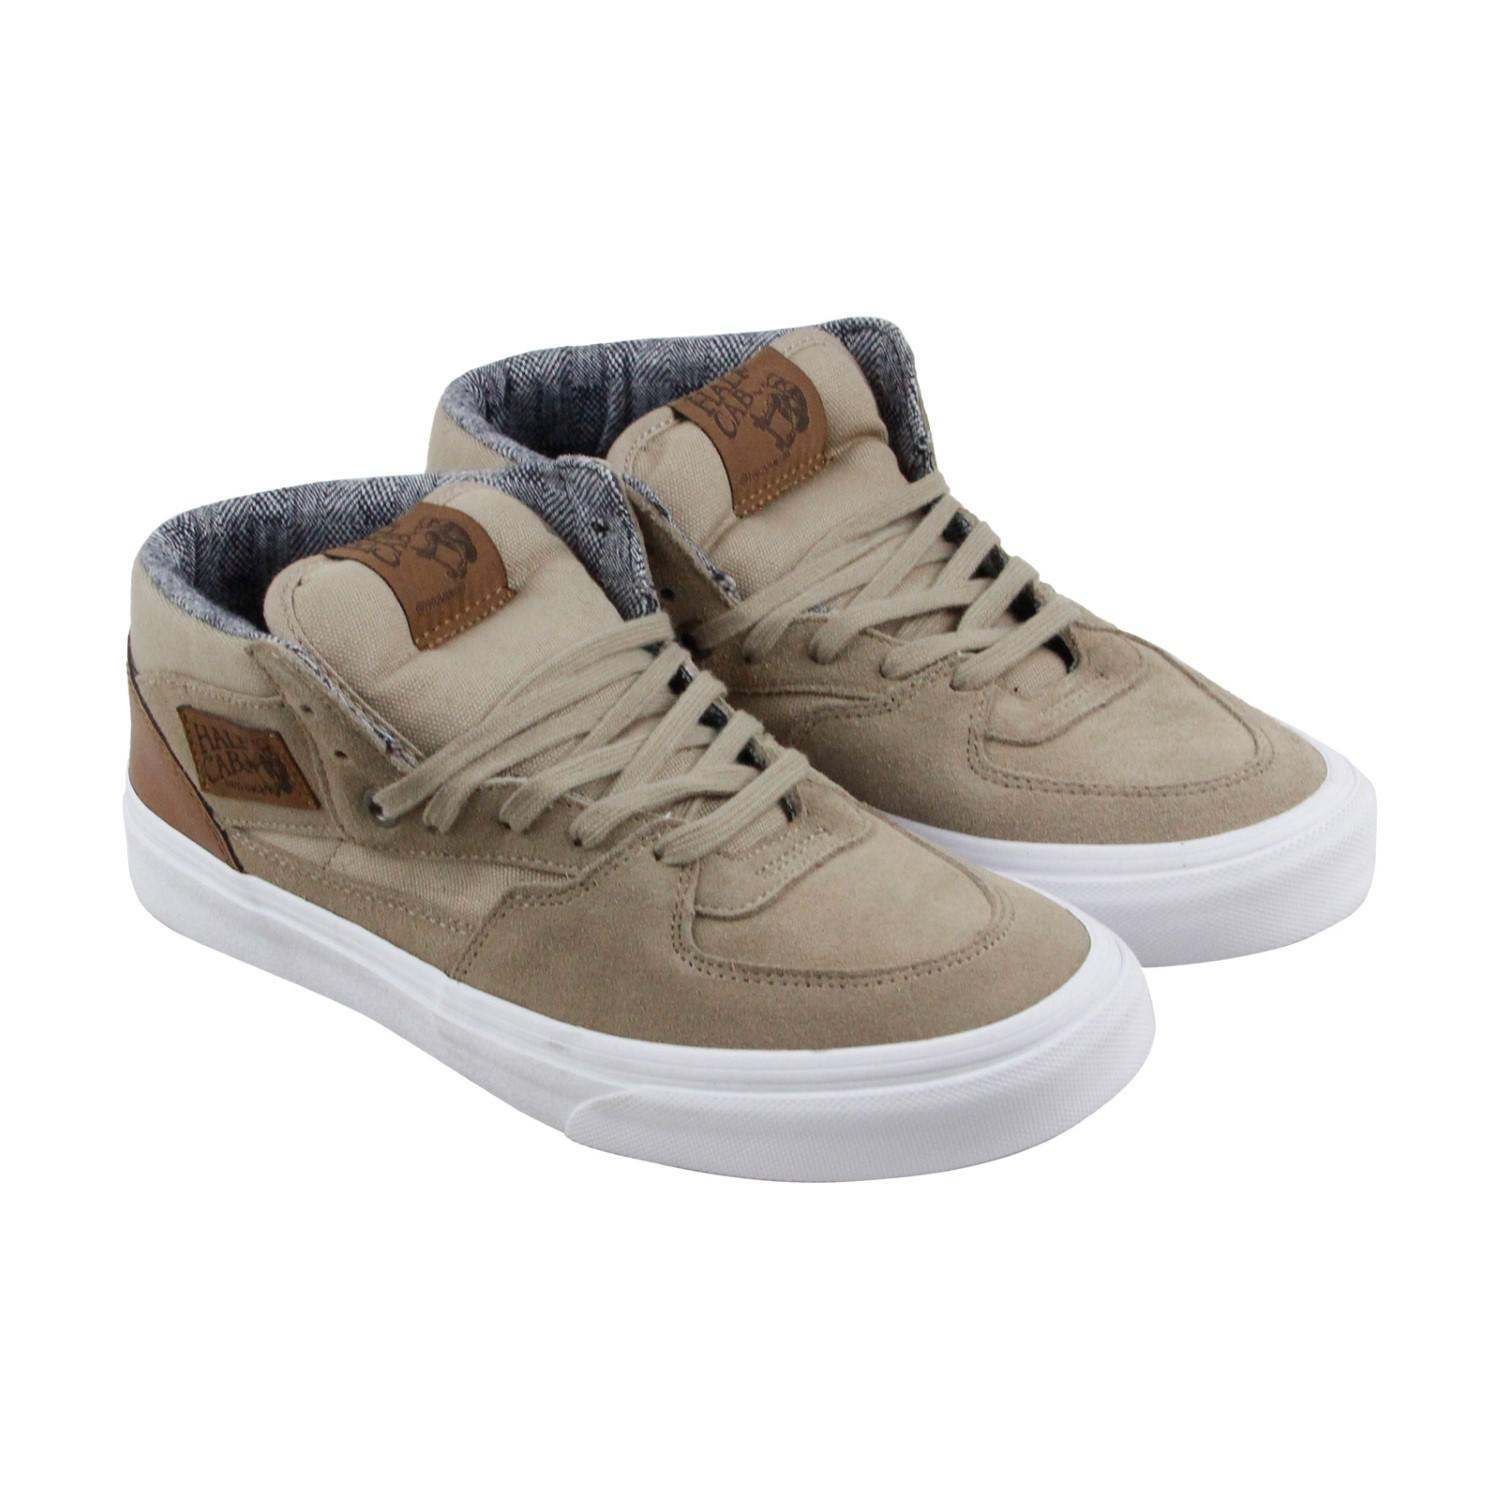 79a2509ced Lyst - Vans Half Cab Sil Silver Mink True White Lace Up Sneakers in ...